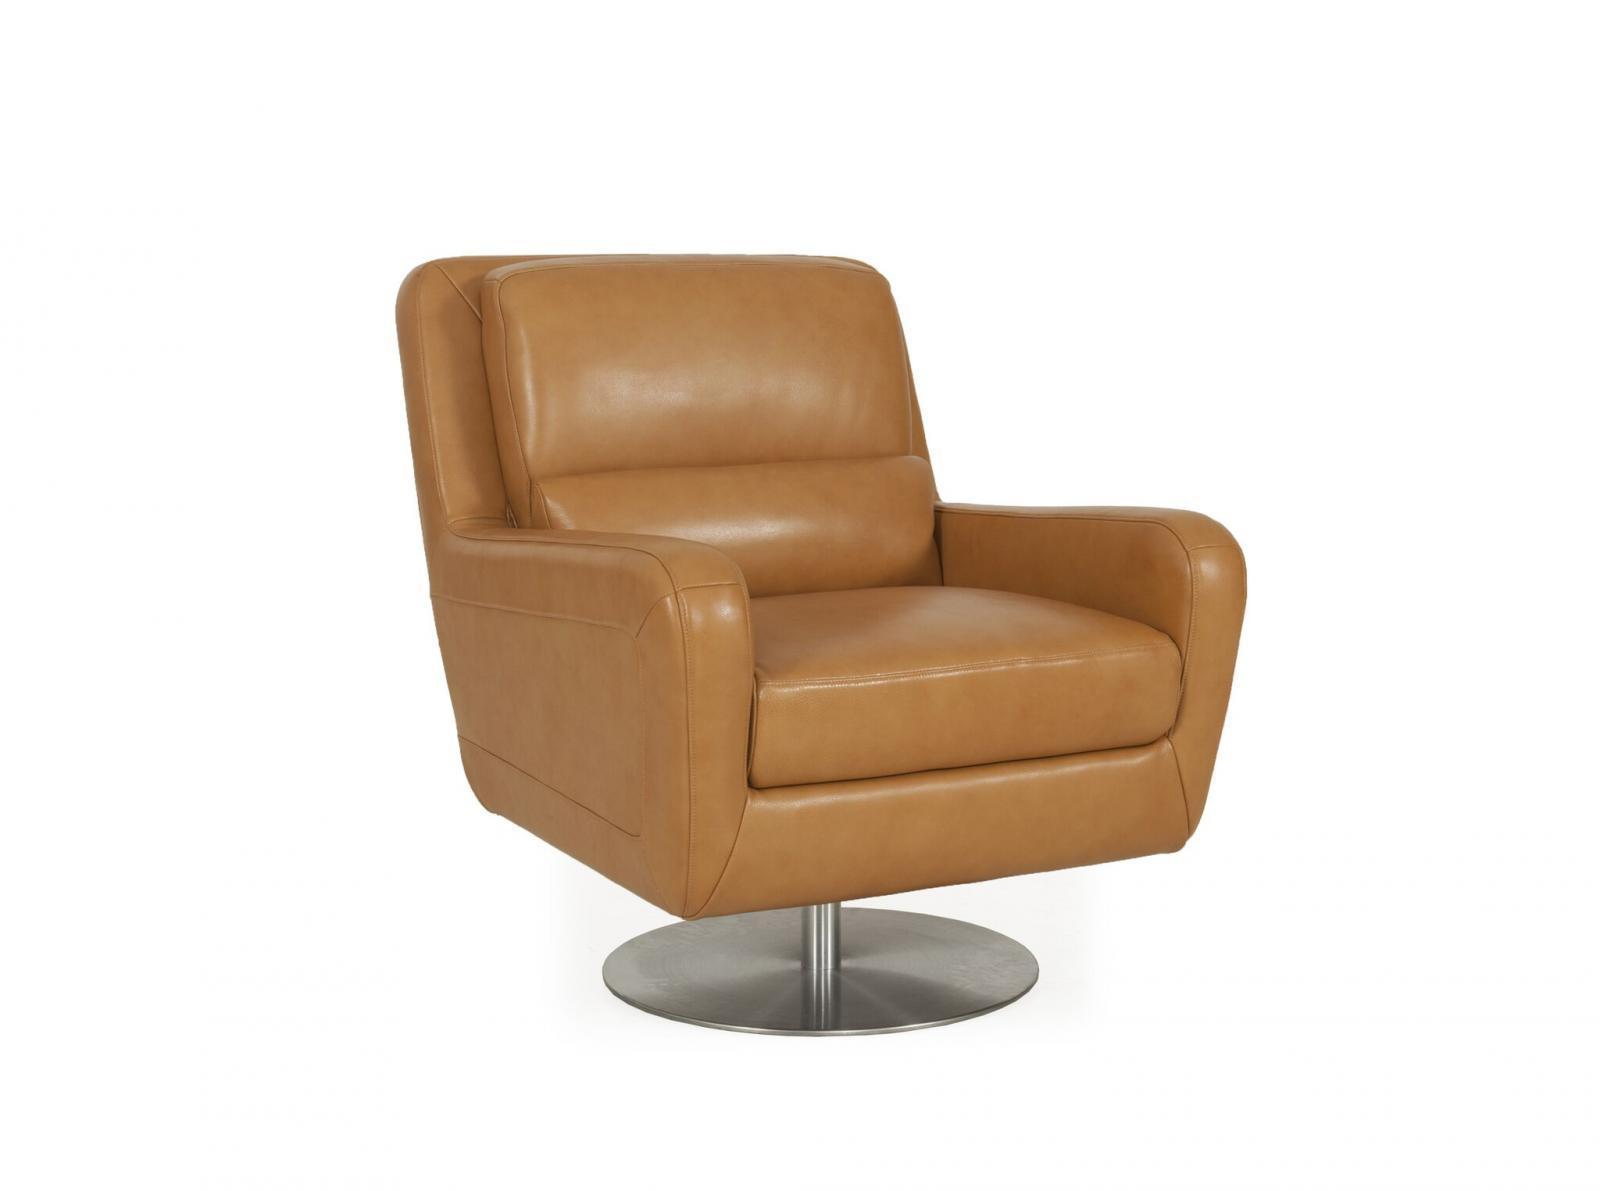 Moroni Swan 550 Honey Top Grain Leather Upholstery Mid-Century Swivel Chair